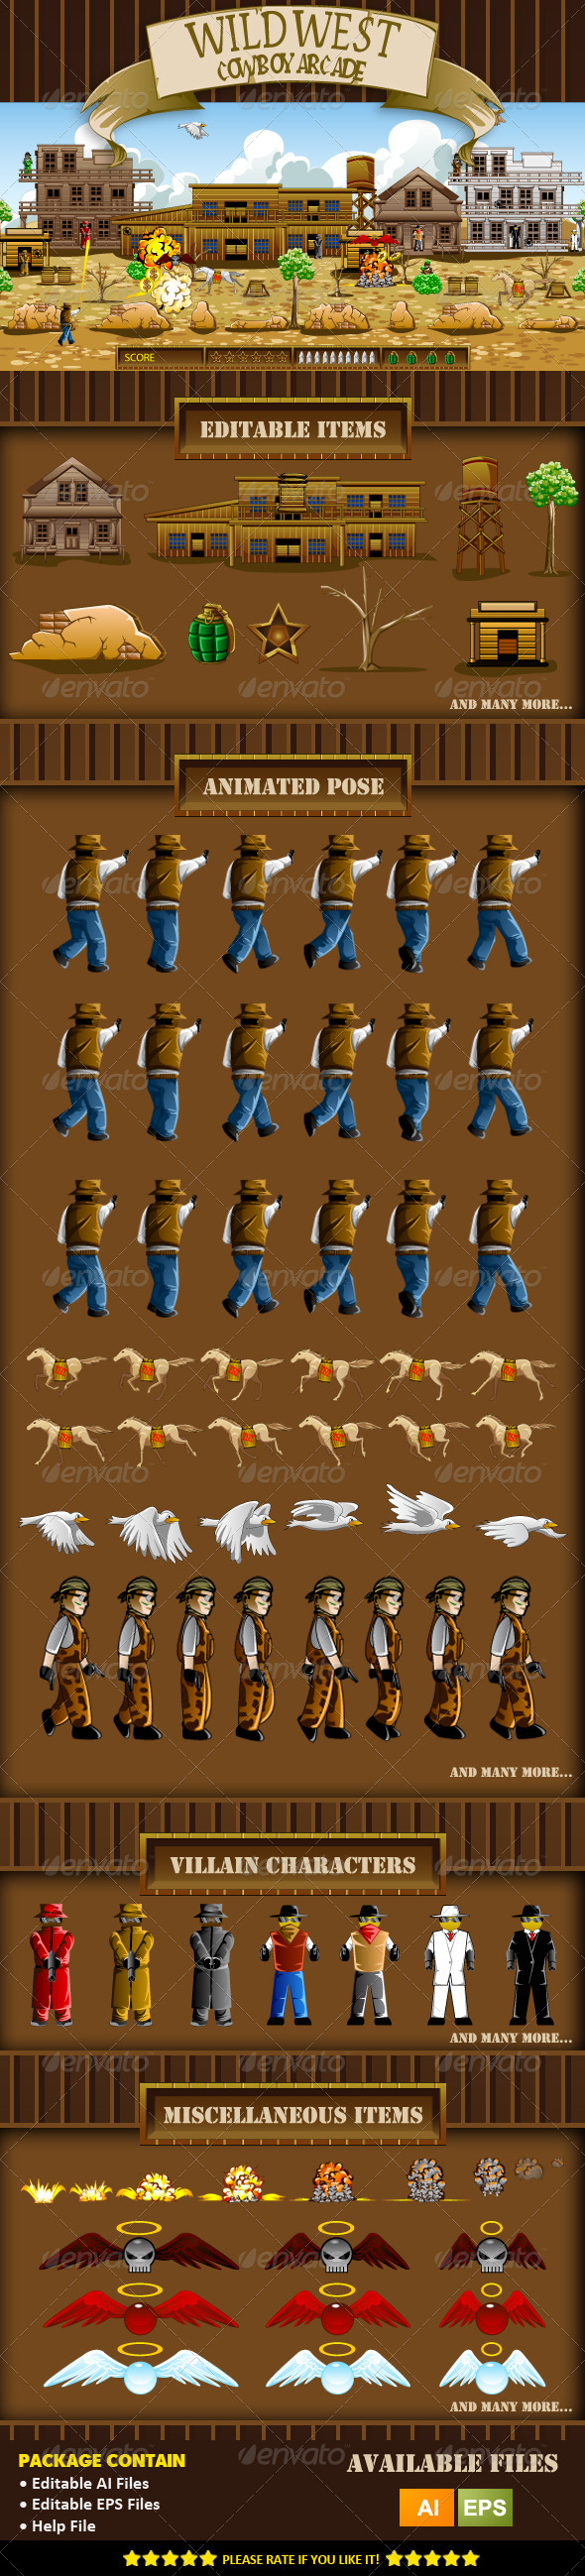 GraphicRiver Wild West Cowboy Game Assets 8468685